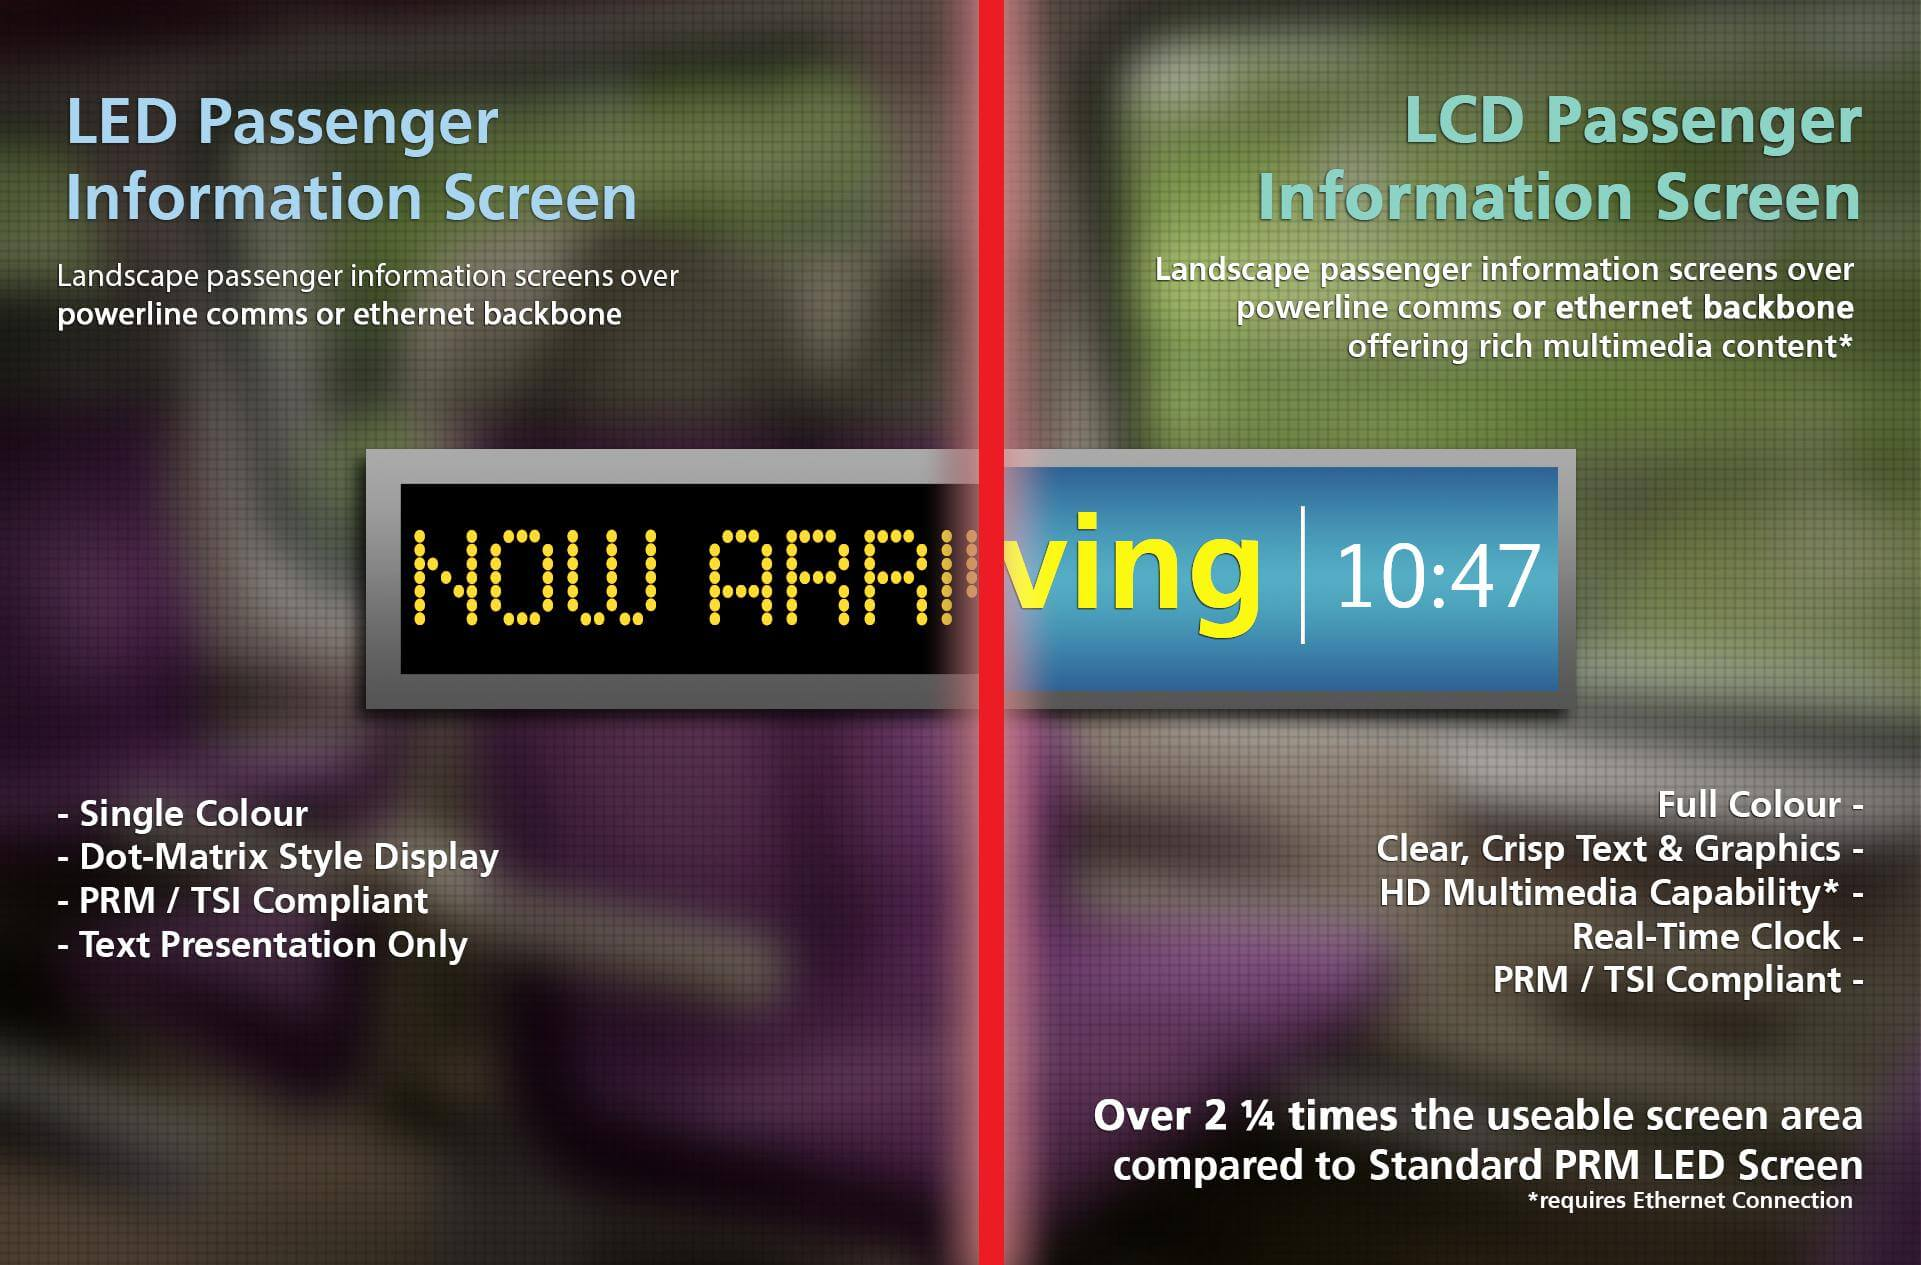 LED/LCD Passenger Information Screen Comparison